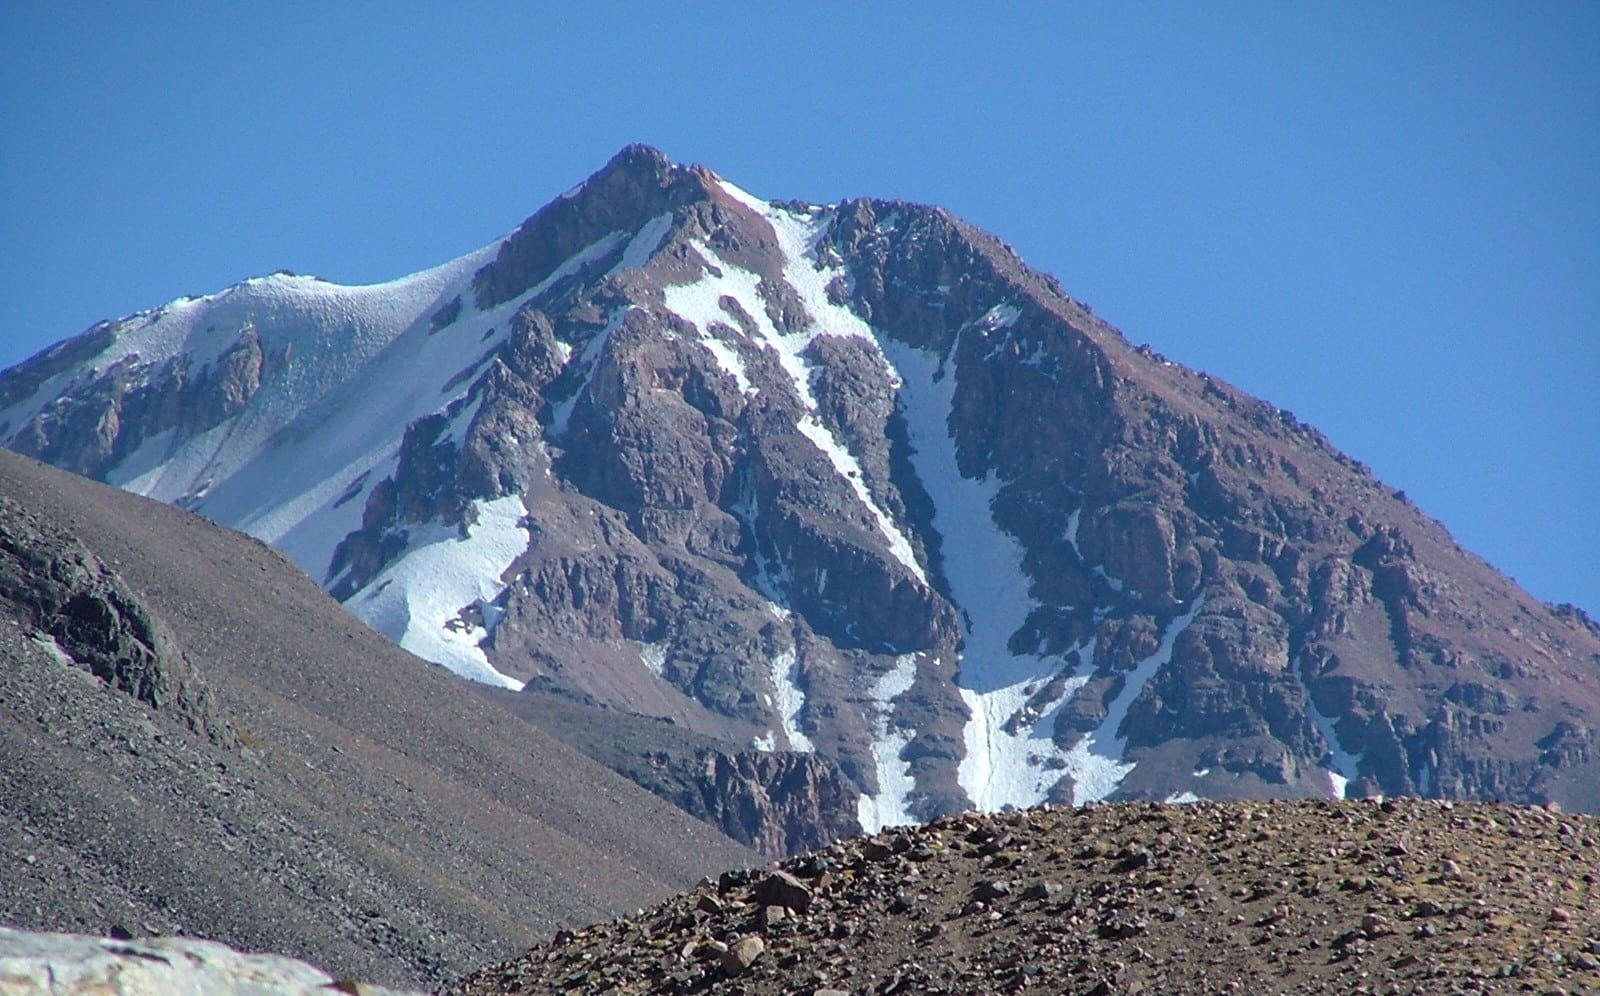 9-day Ansilta Peak Hike in the Andes